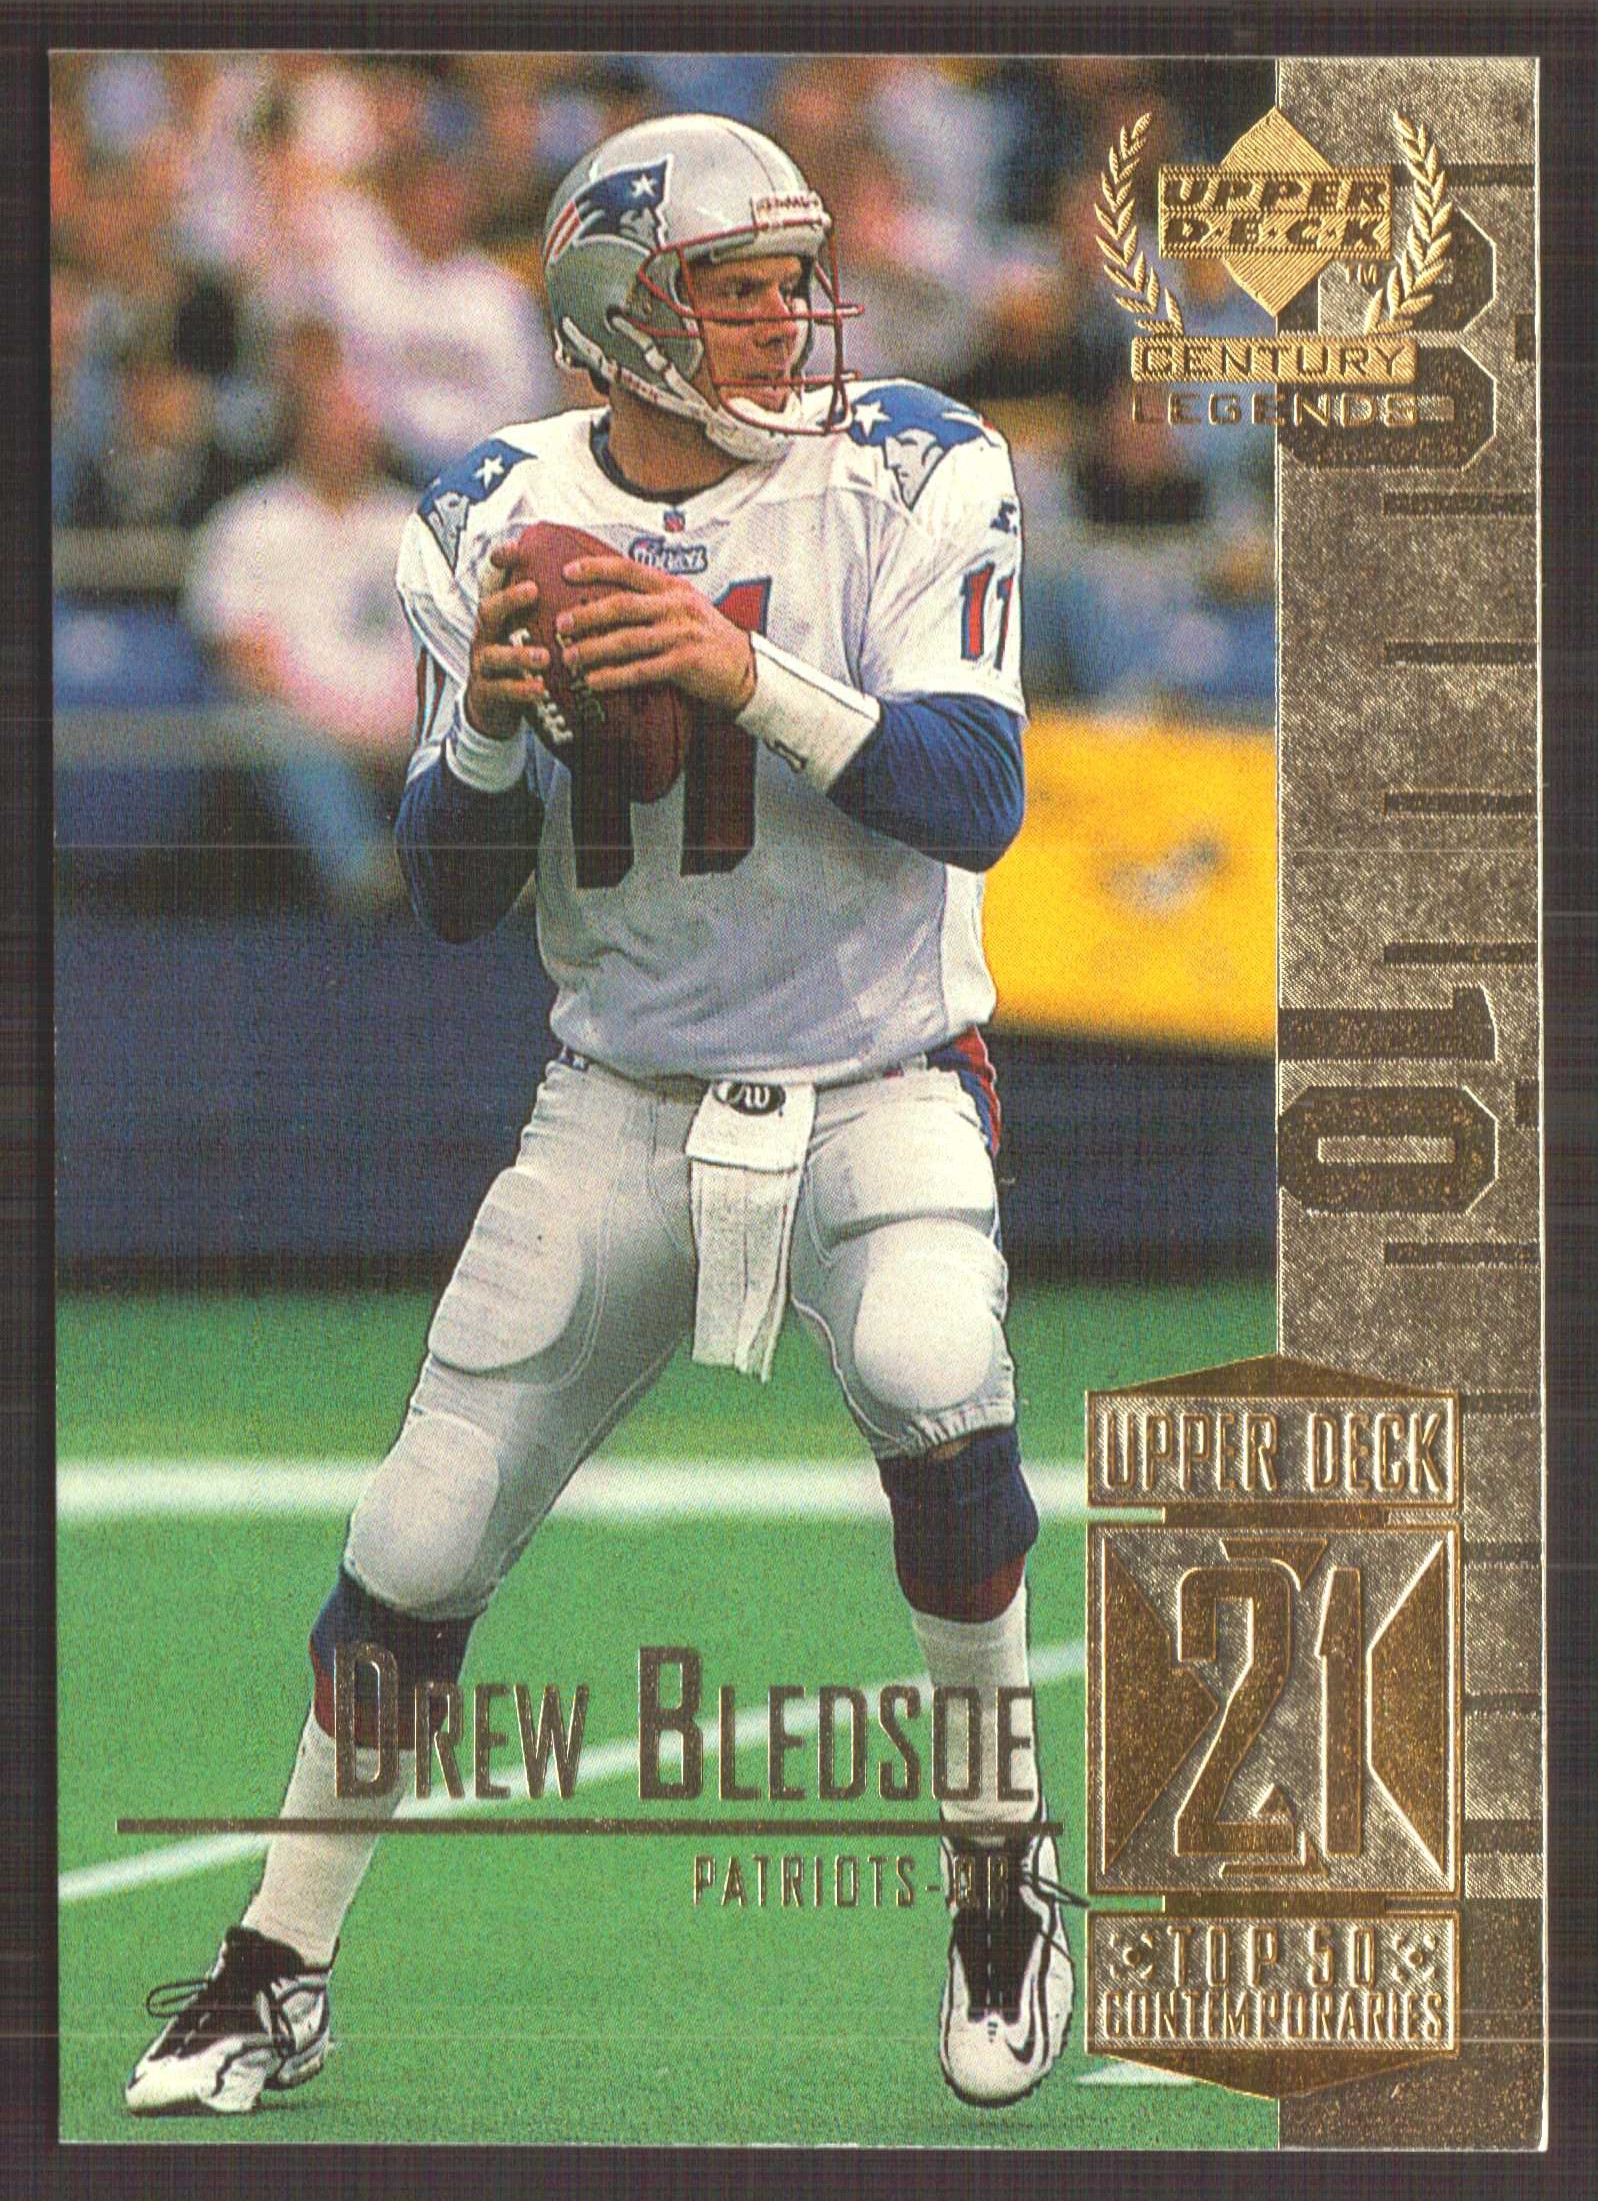 1999 Upper Deck Century Legends #71 Drew Bledsoe